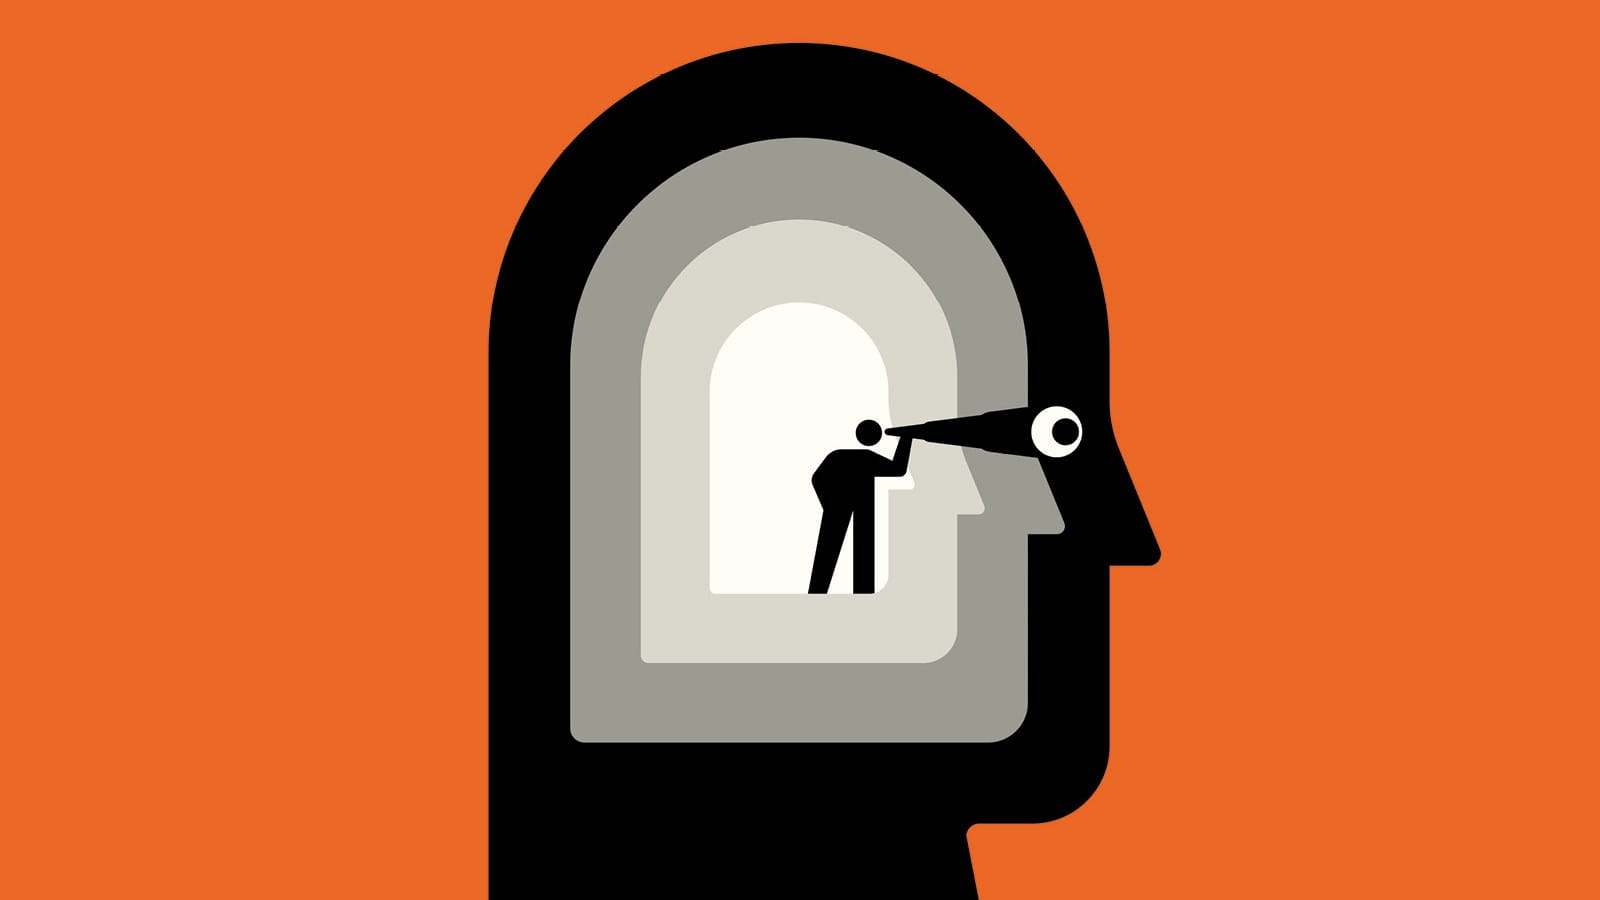 An illustration showing a person standing inside a head, staring through a telescope and out through the head's eye